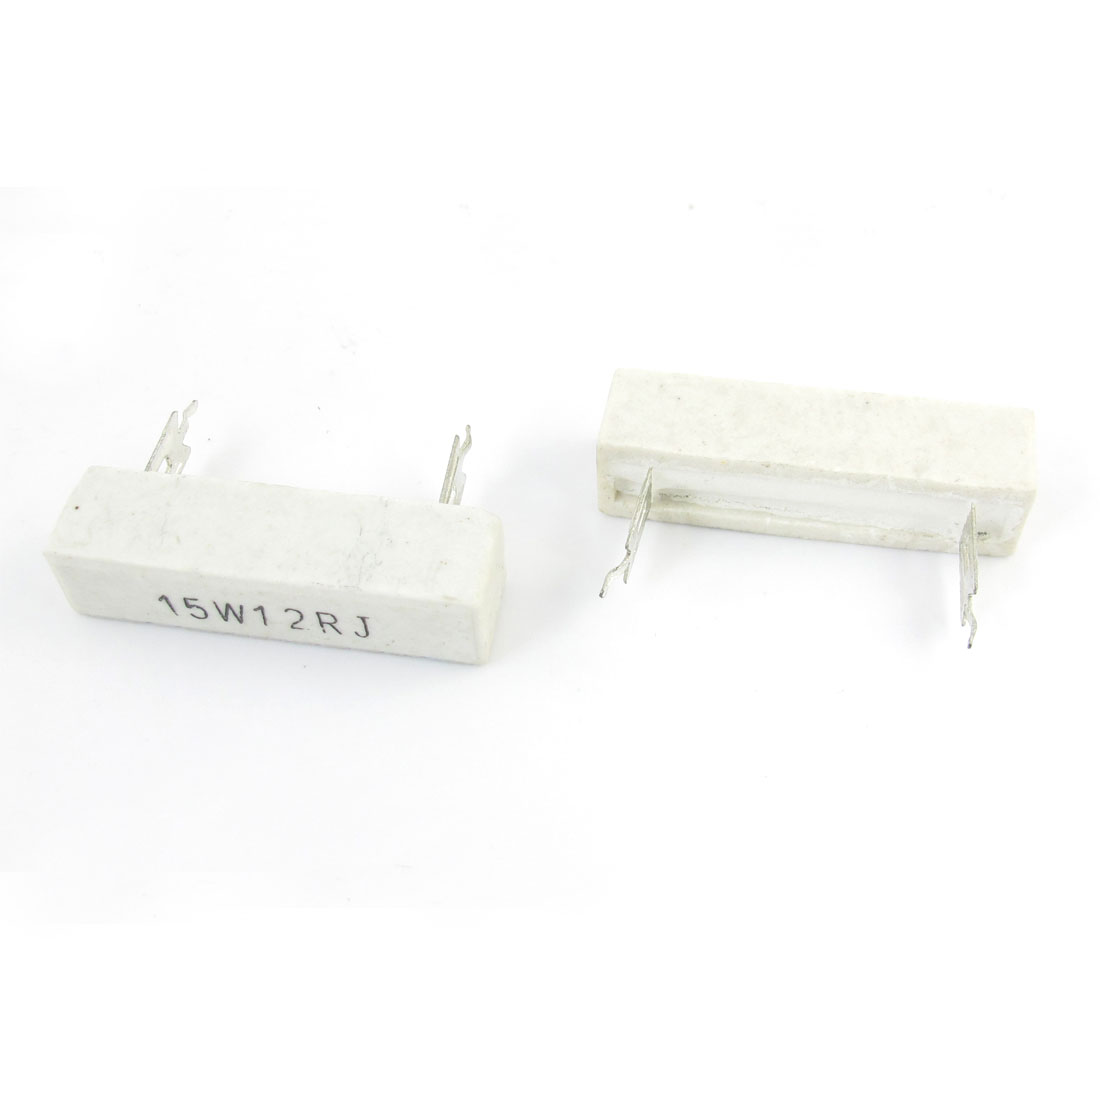 2 Pcs Fixed Wire Wound Ceramic Cement Resistor 12 Ohm 15W 5%